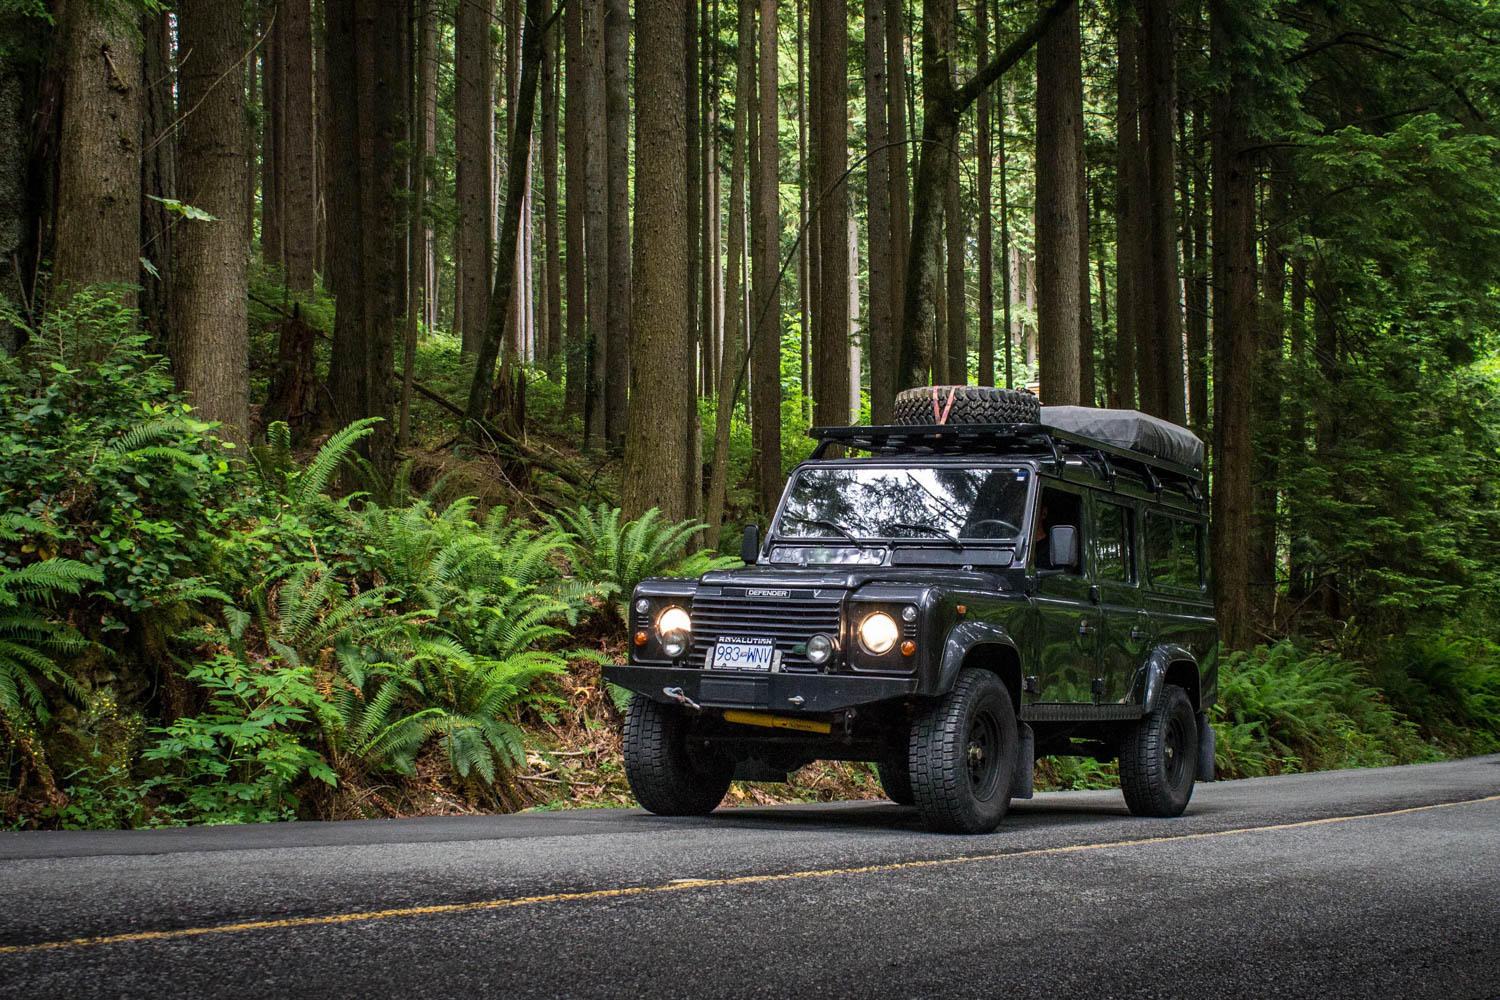 Land Rover Defender 110 TD5 in the woods